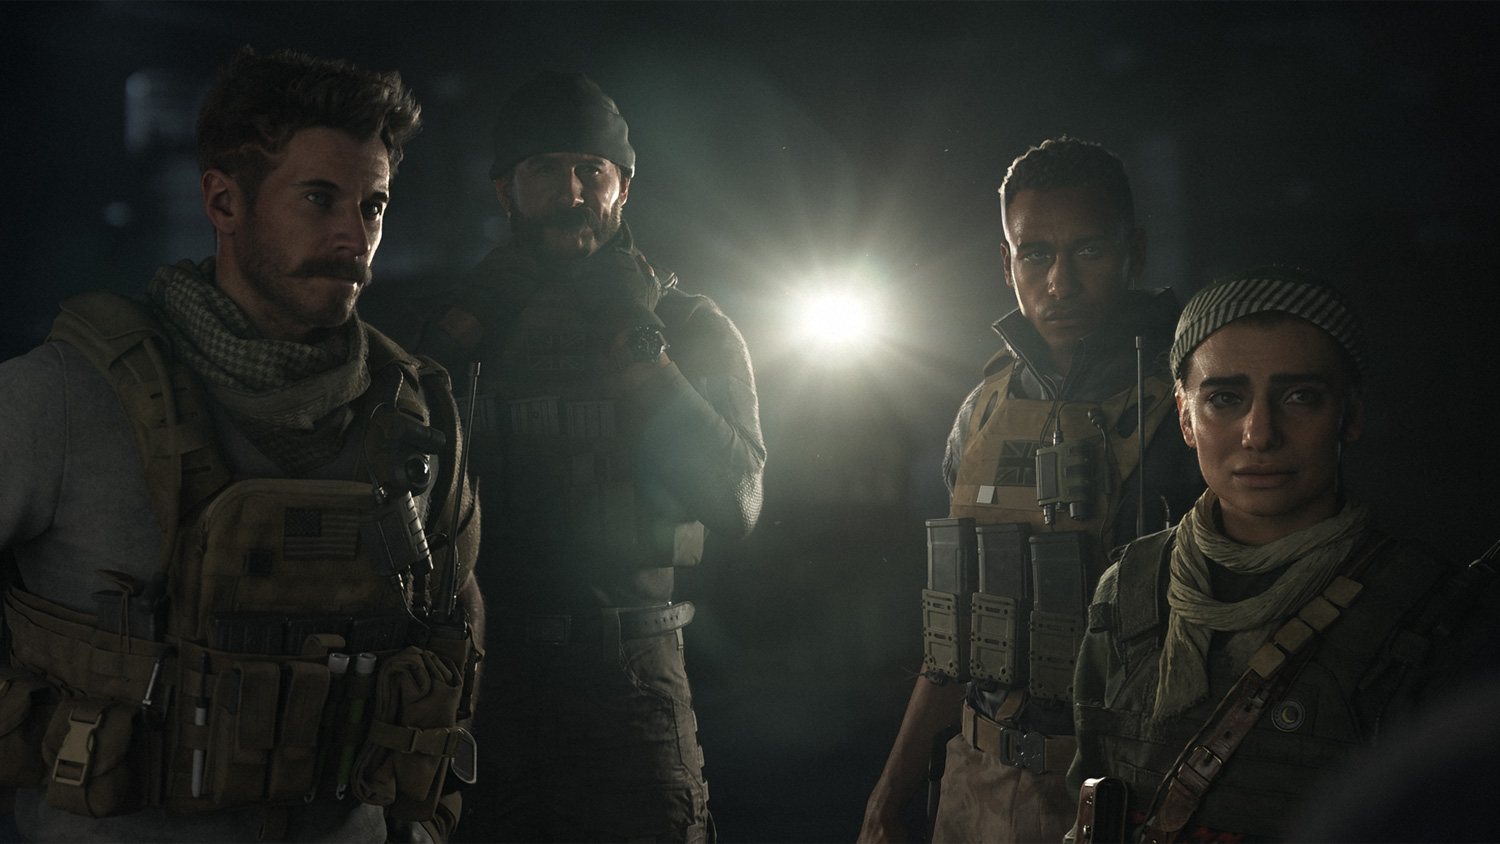 A scene from Call of Duty: Modern Warfare.